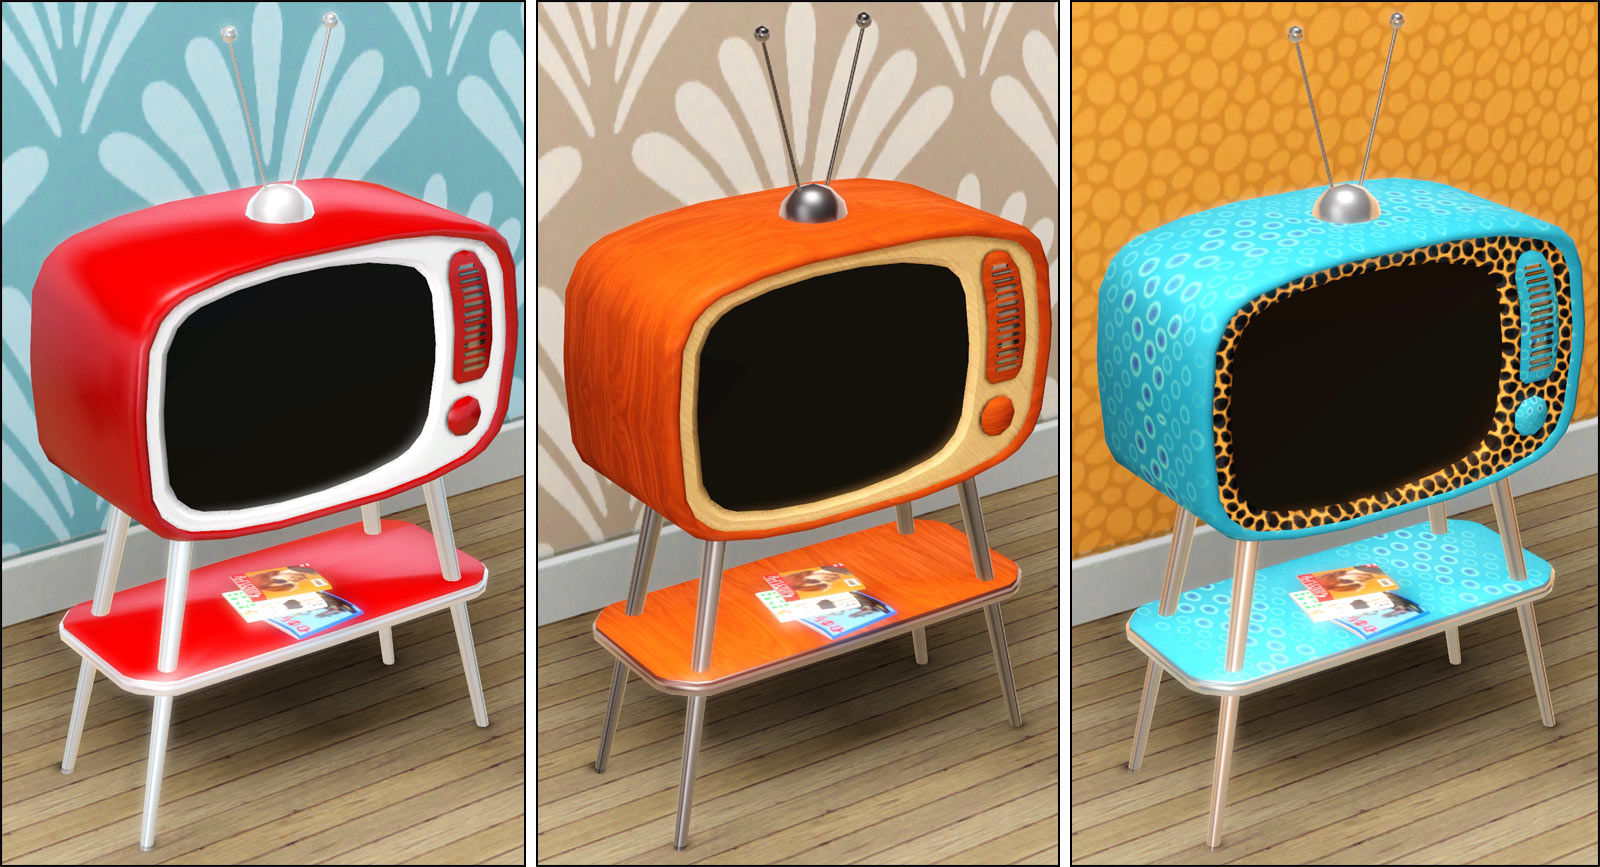 sims 3 cc furniture. \ Sims 3 Cc Furniture